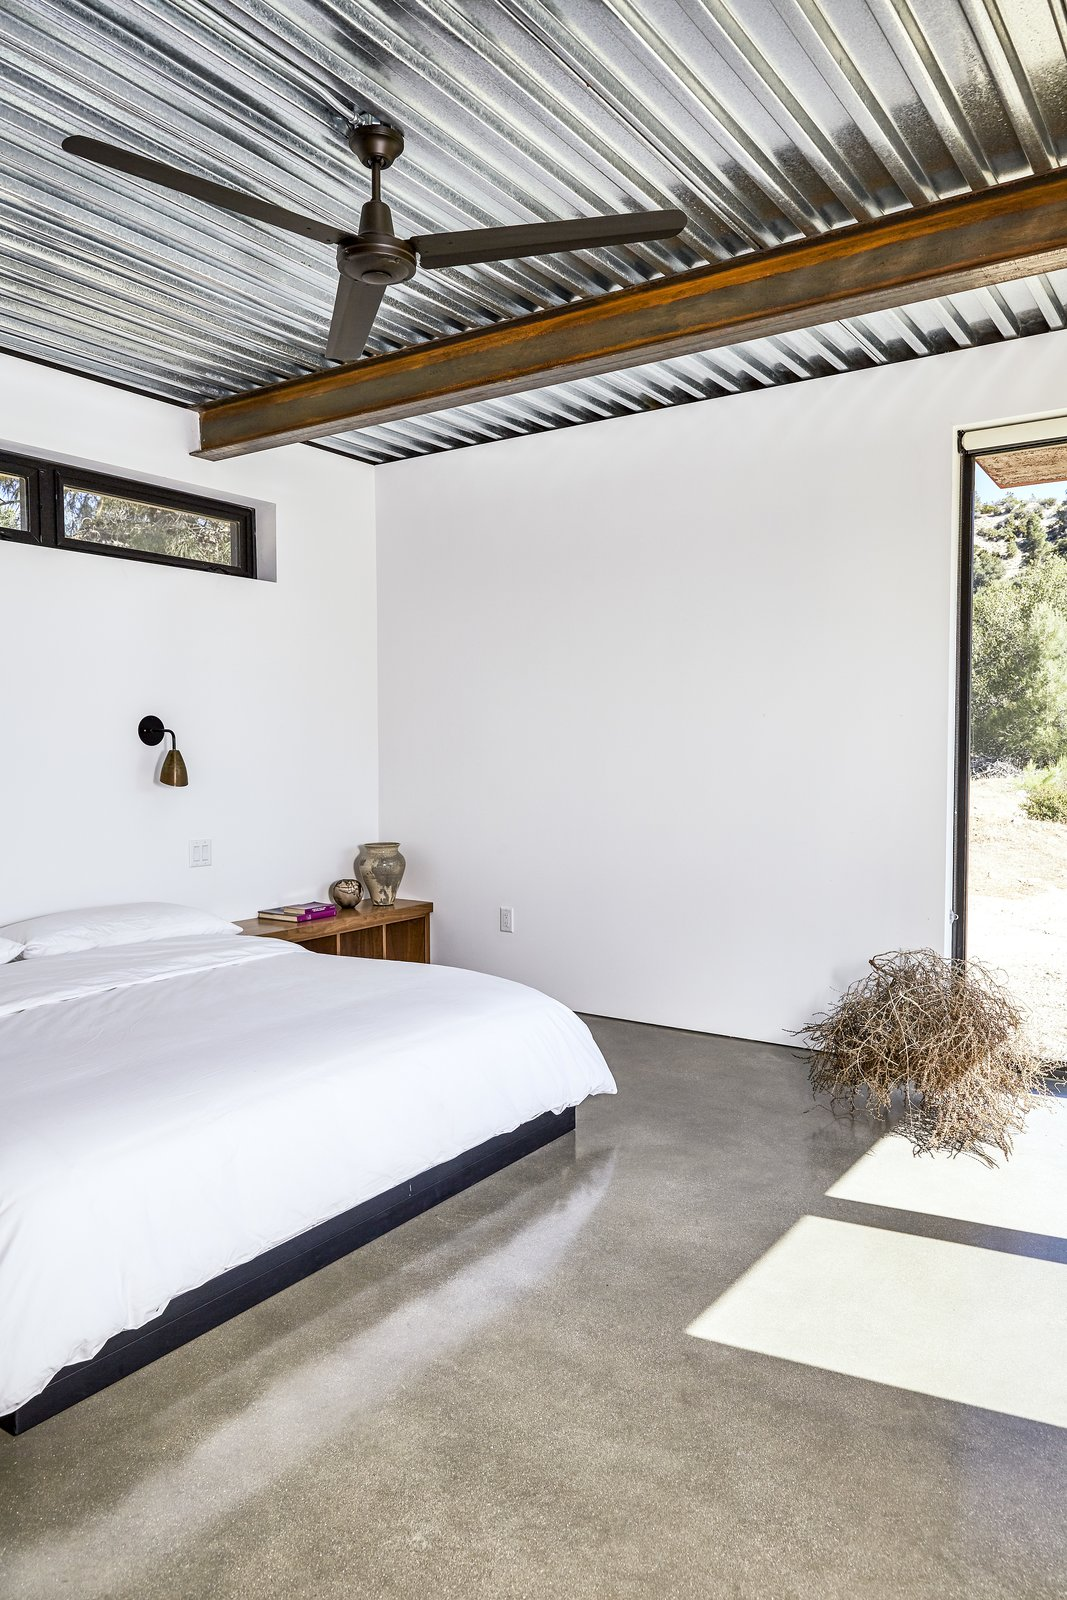 Bedroom, Bed, Concrete, Wall, and Night Stands The master bedroom occupies one of three units extending off the main space. Like other furnishings, the bed was made by steel fabricators. - Tehachapi Mountains, California Dwell Magazine : November / December 2017  Best Bedroom Night Stands Wall Concrete Photos from At This High-Desert Home, a Whole Wall Opens Up When You Crank a Giant Wheel